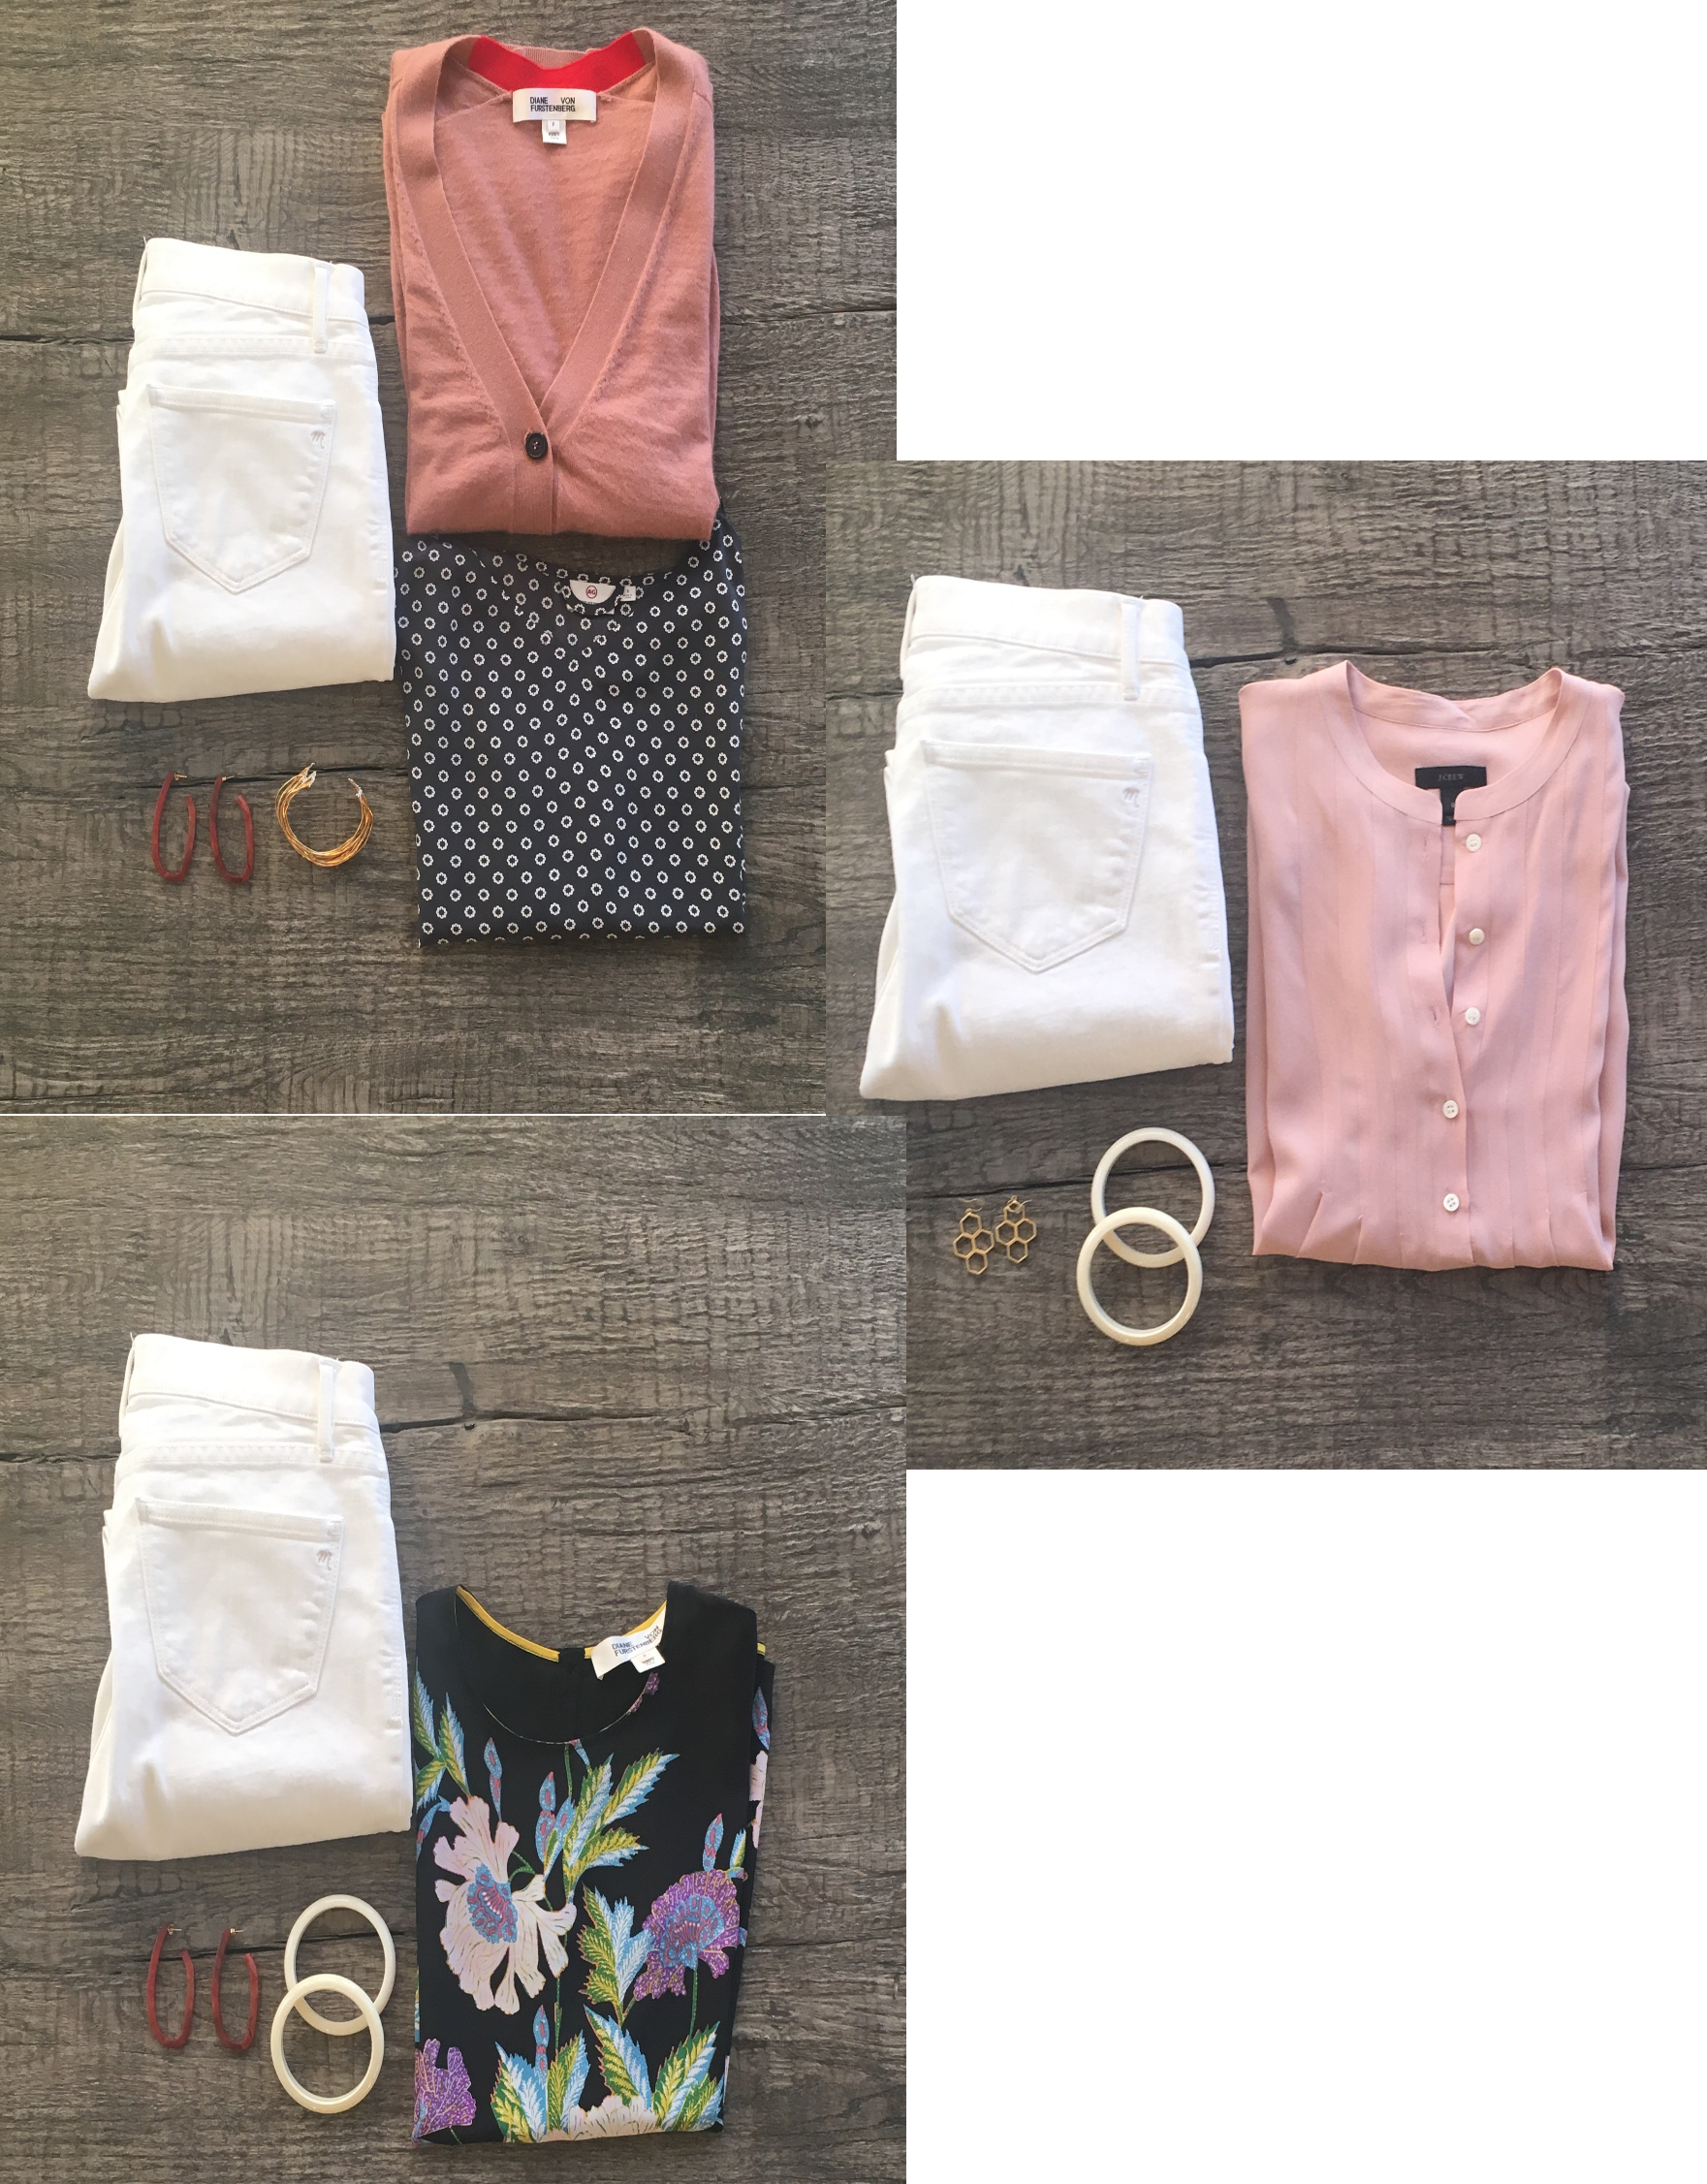 Three outfits using white jeans as the base.